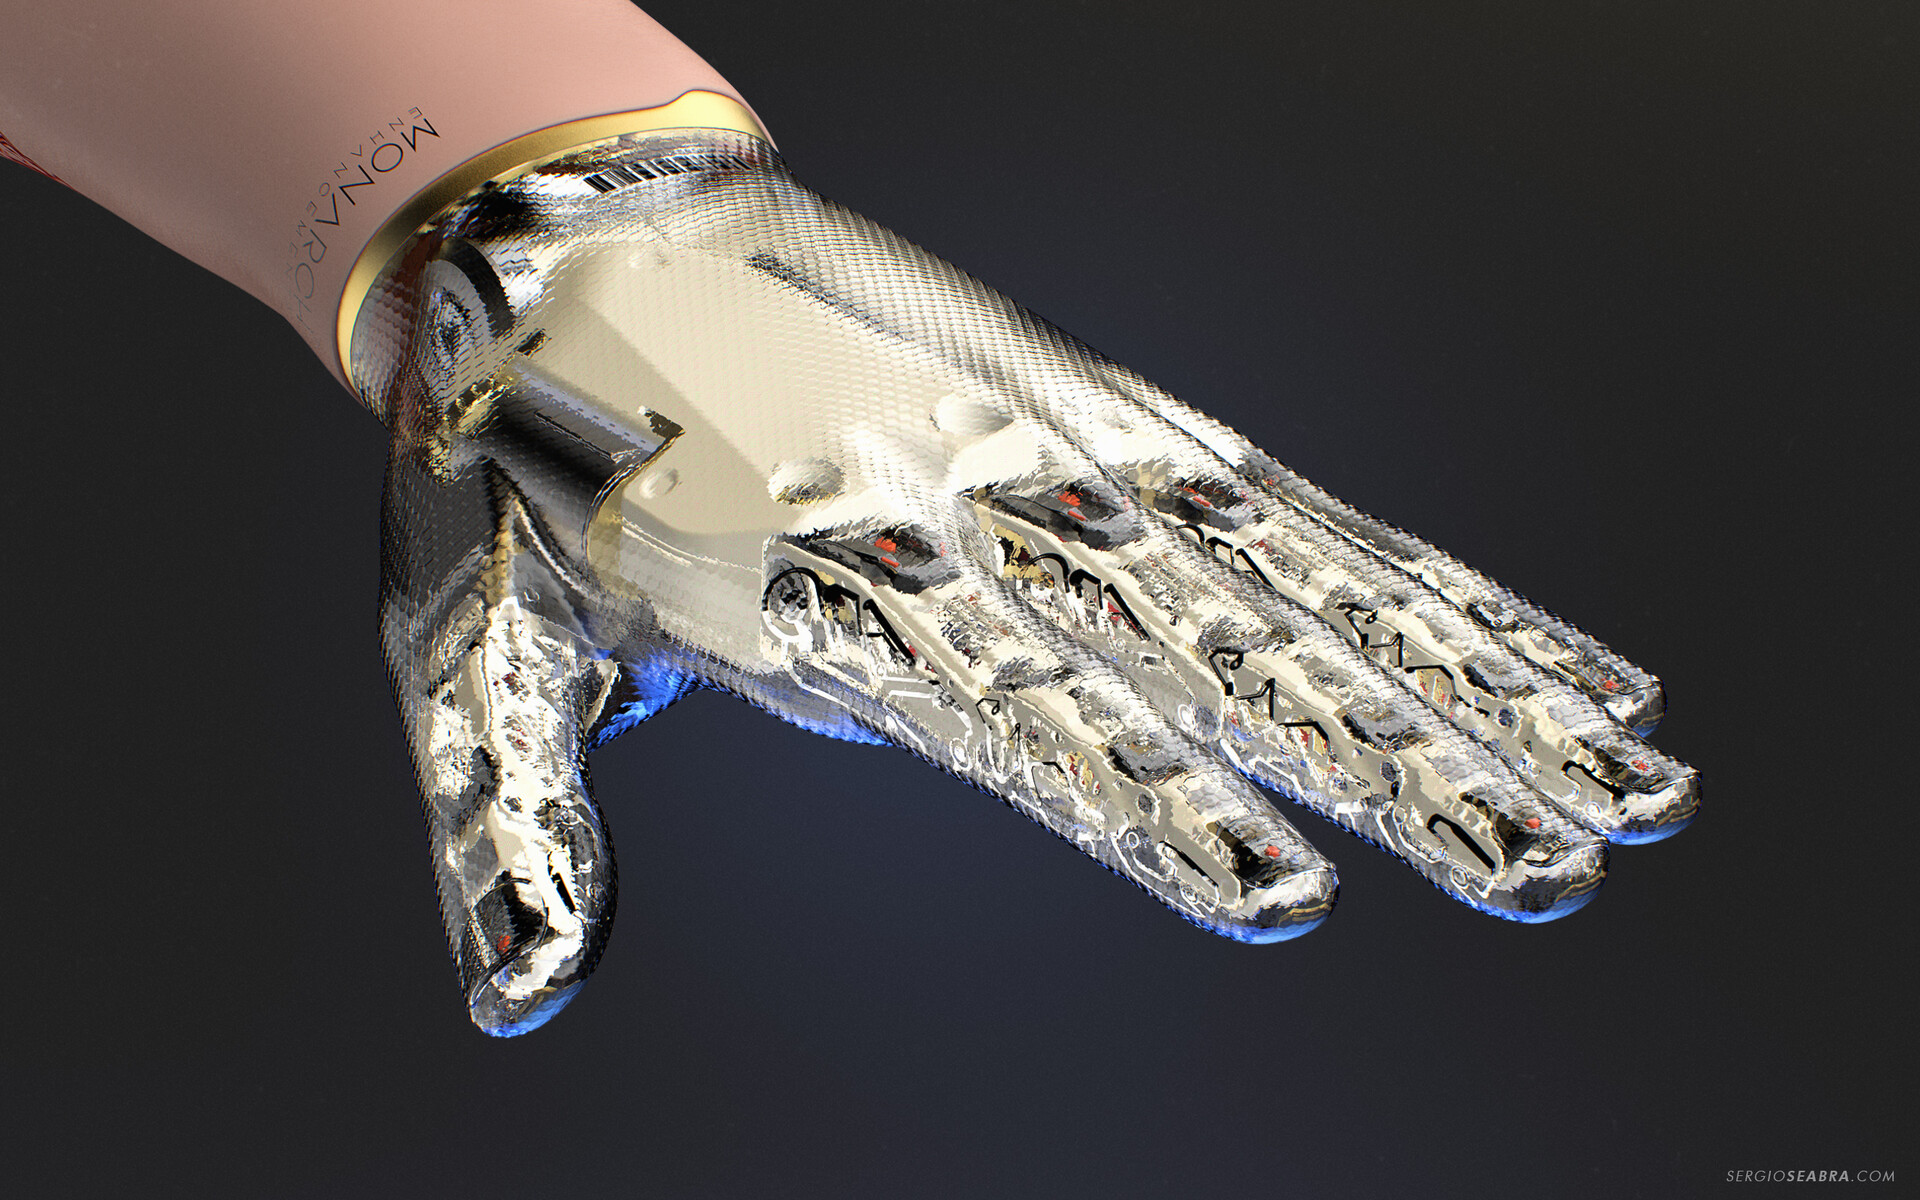 Sergio seabra 20190911 monarch prosthetic arm